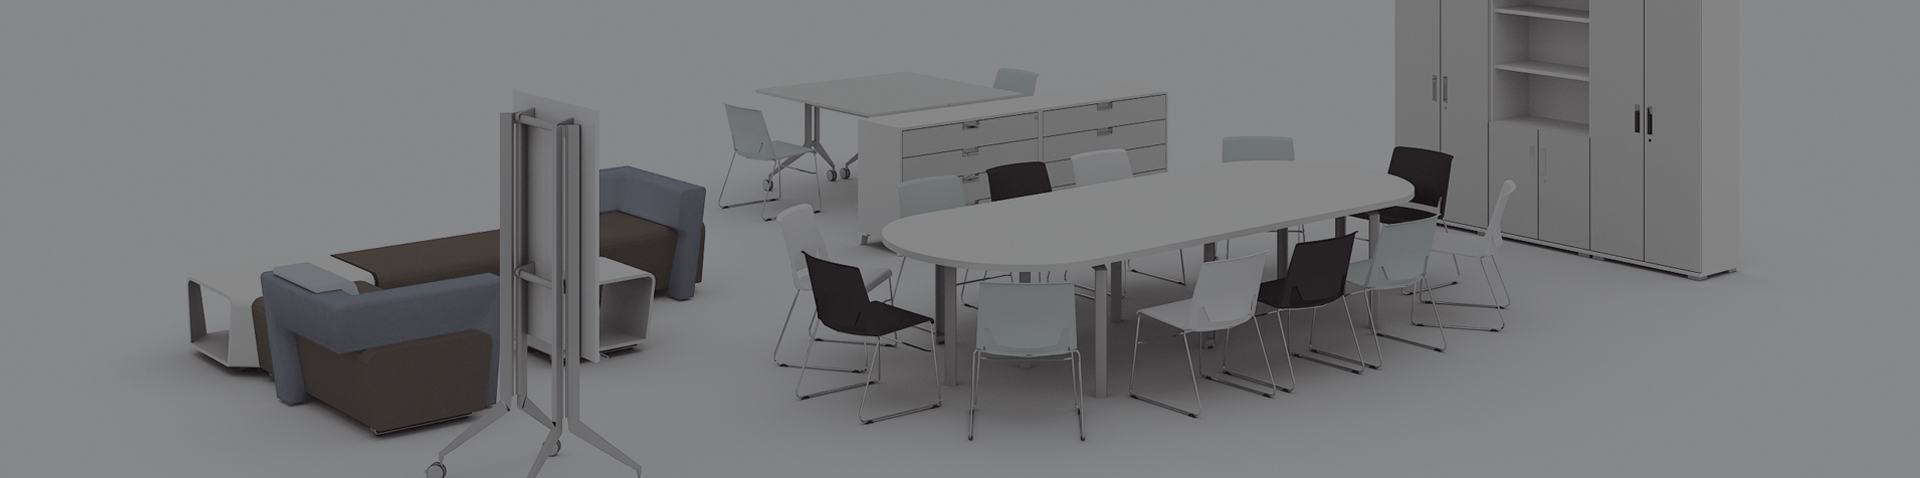 mobilier innospace